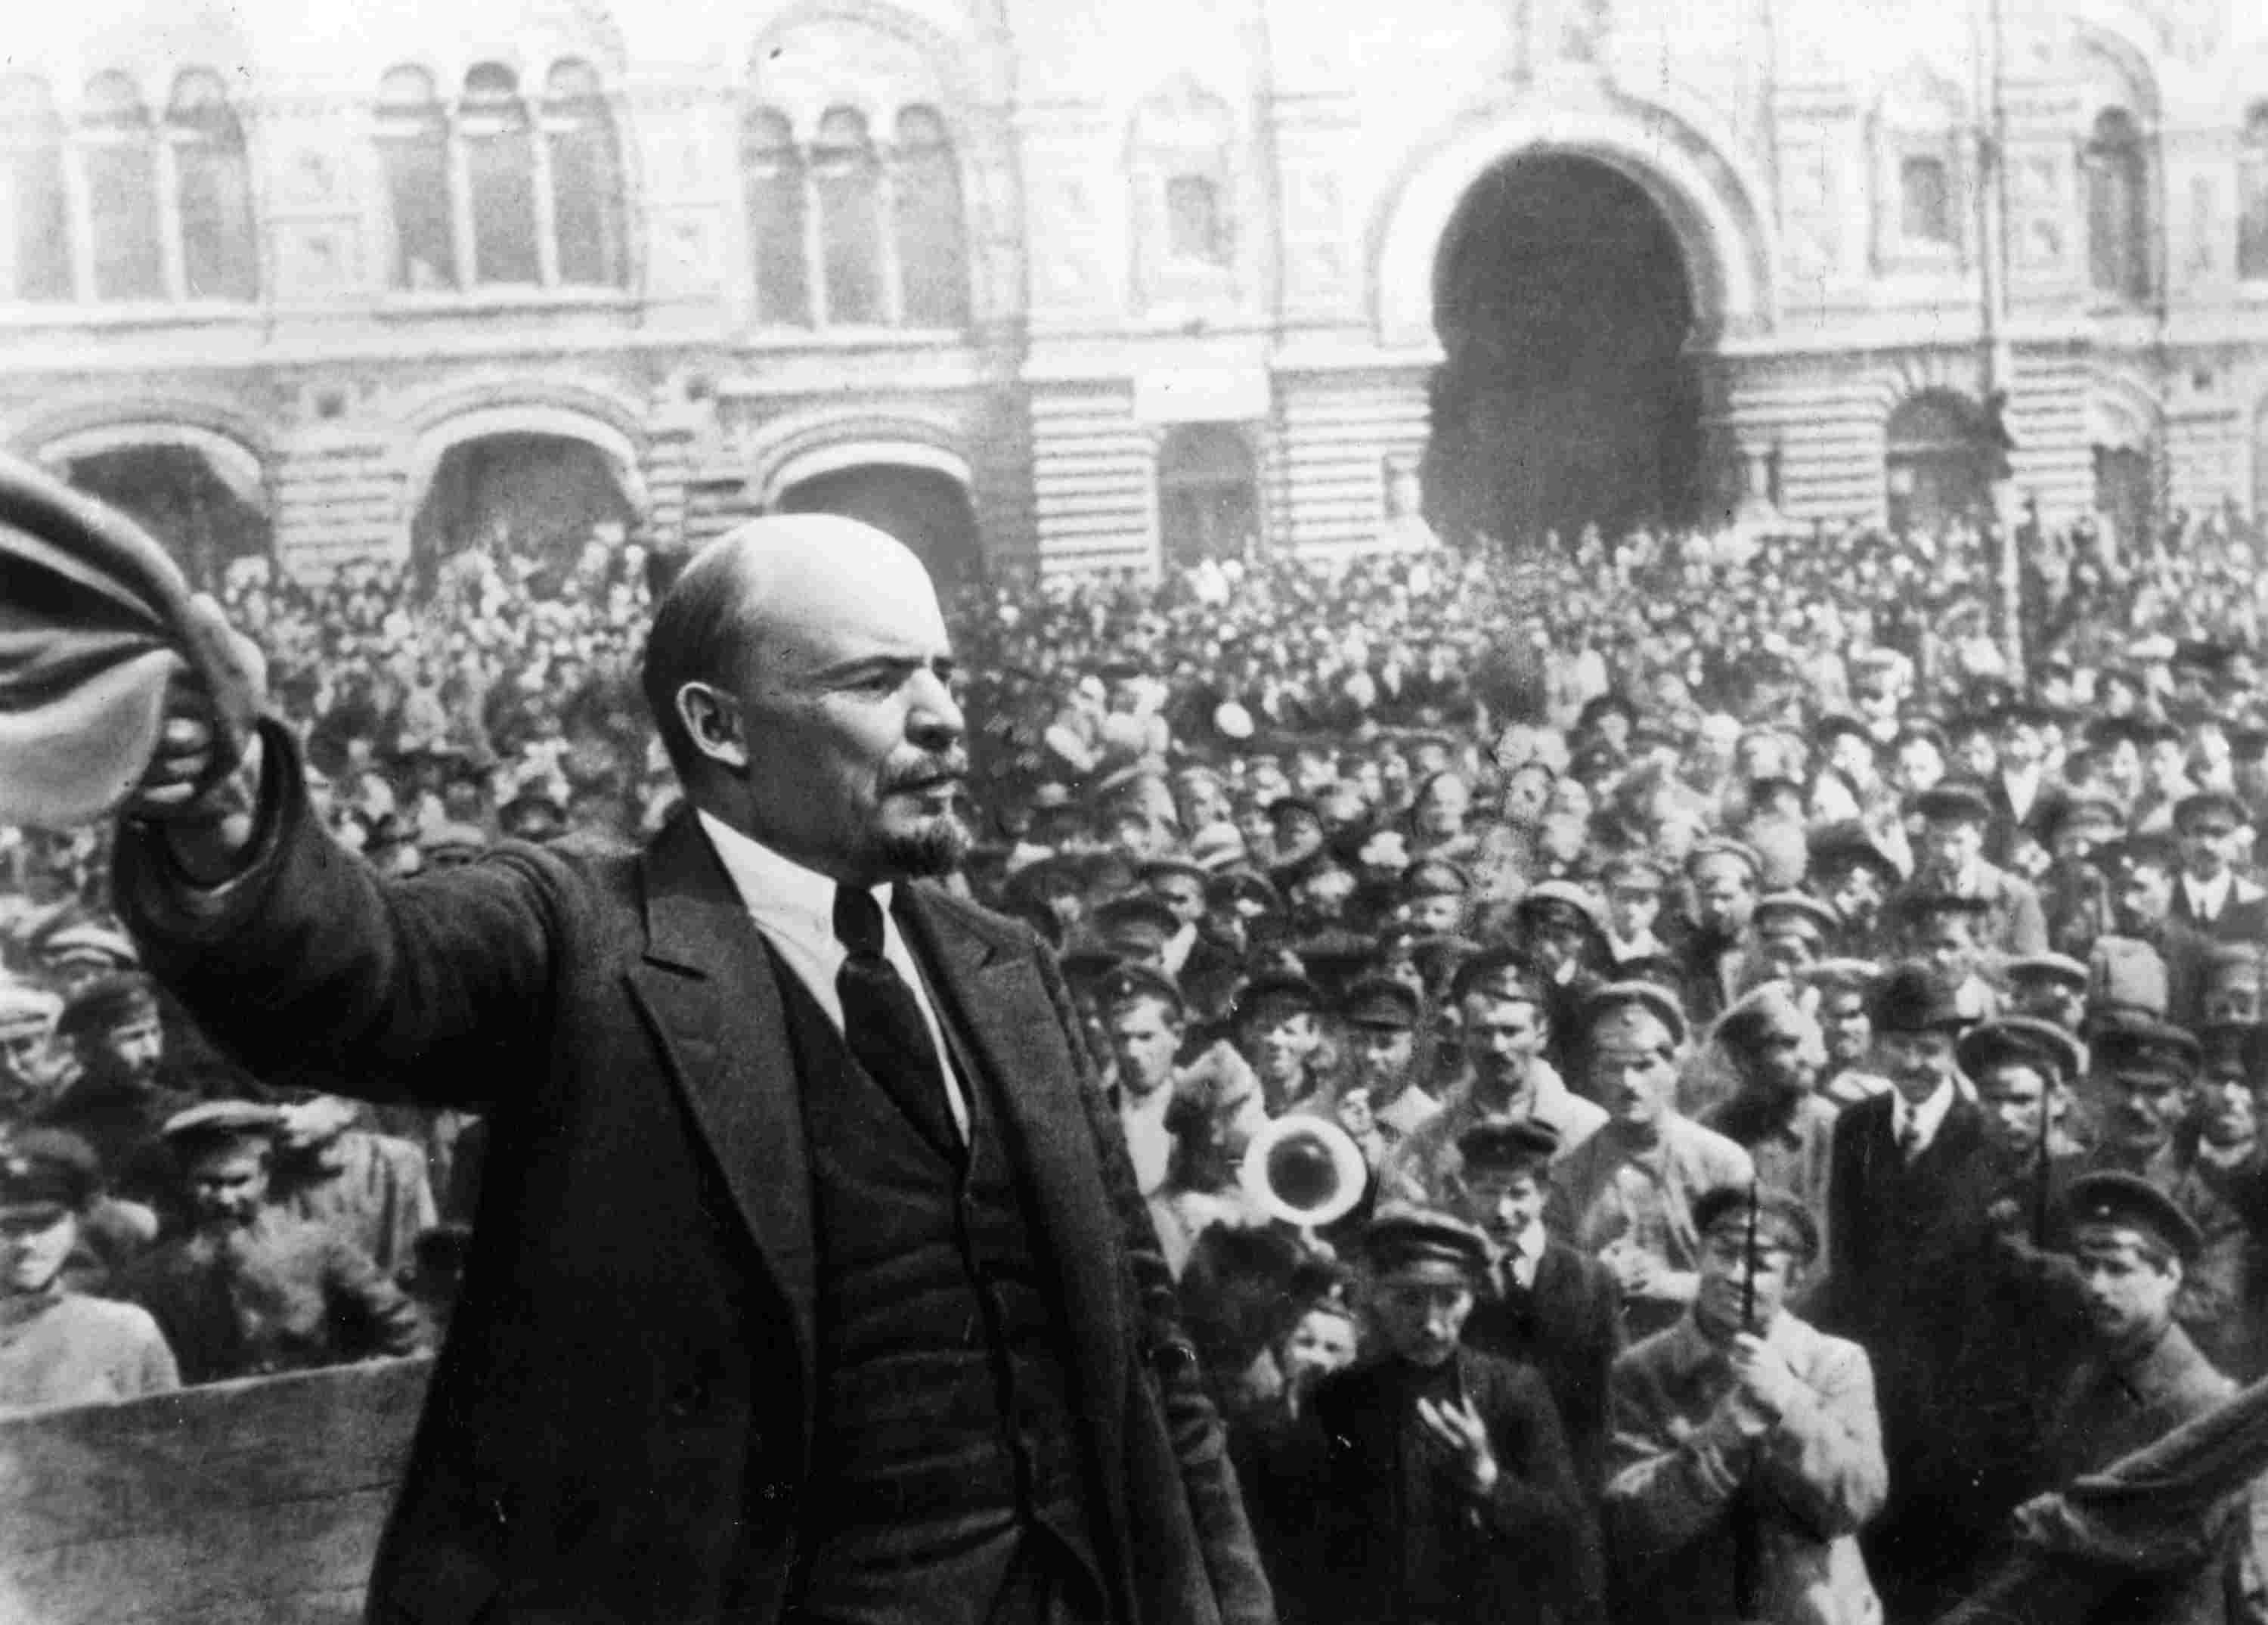 Vladimir Ilyich Lenin holding a hat in front of a large crowd.